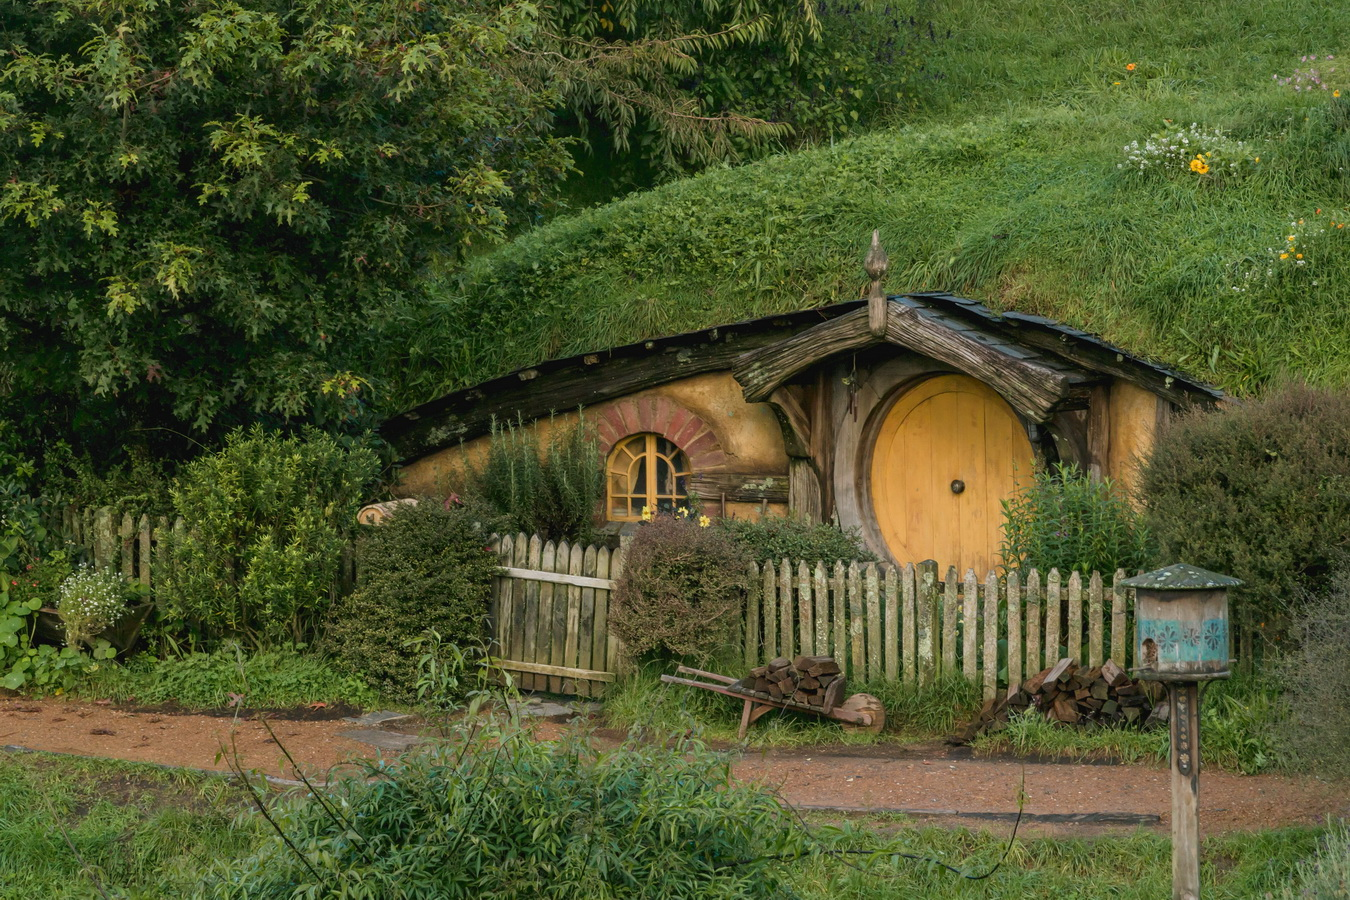 underground house,yellow door,The Hobbiton, The Shire,Хоббитшир, Удел, Хоббитания, Заселье, Край,Matamata, North Island ,New Zealand